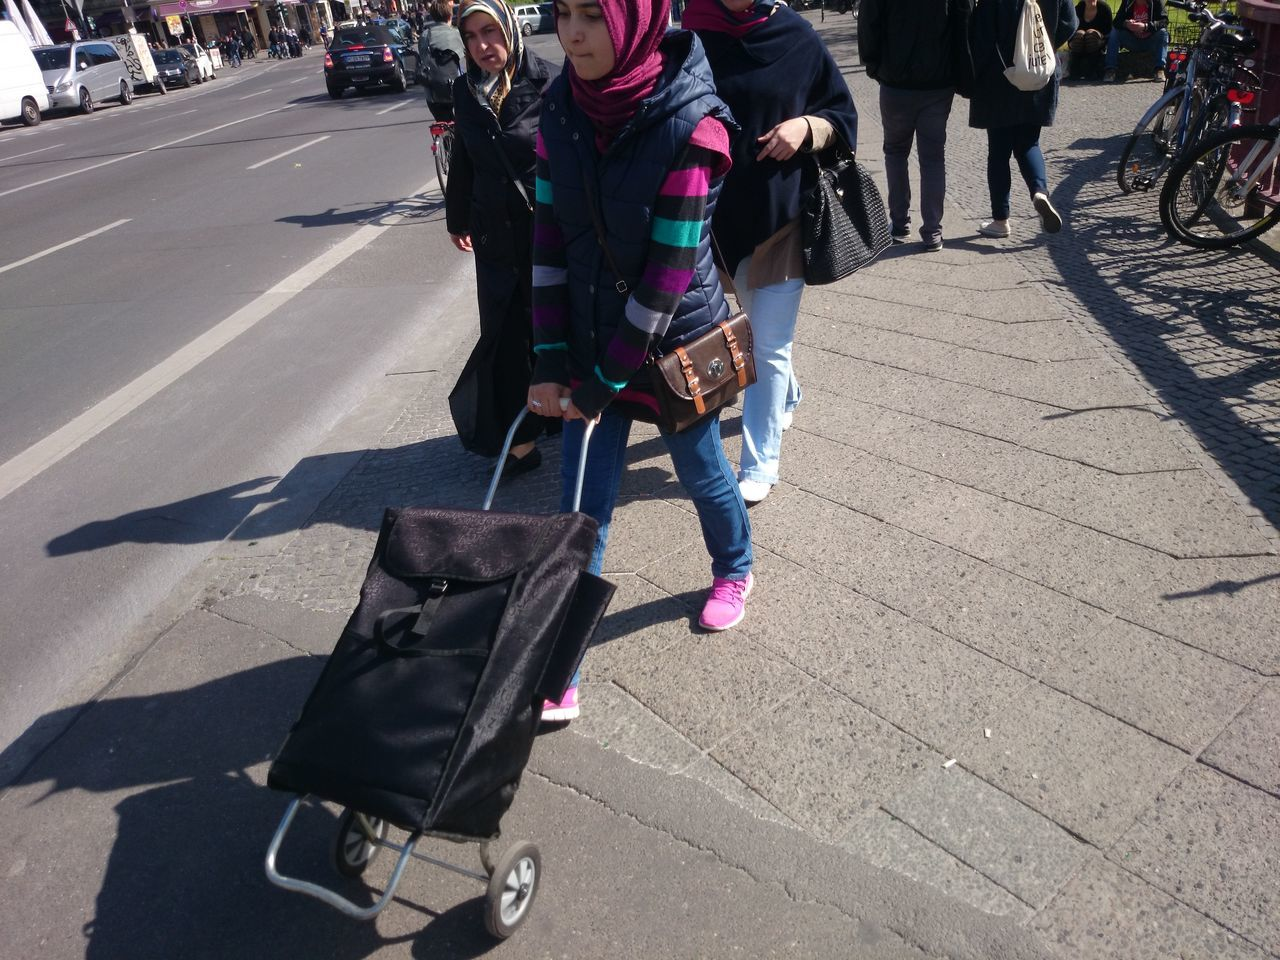 transportation, street, outdoors, travel, luggage, walking, riding, real people, mode of transport, day, road, sunlight, city, bicycle, land vehicle, baby stroller, lifestyles, women, low section, shadow, men, pedestrian, one person, people, adult